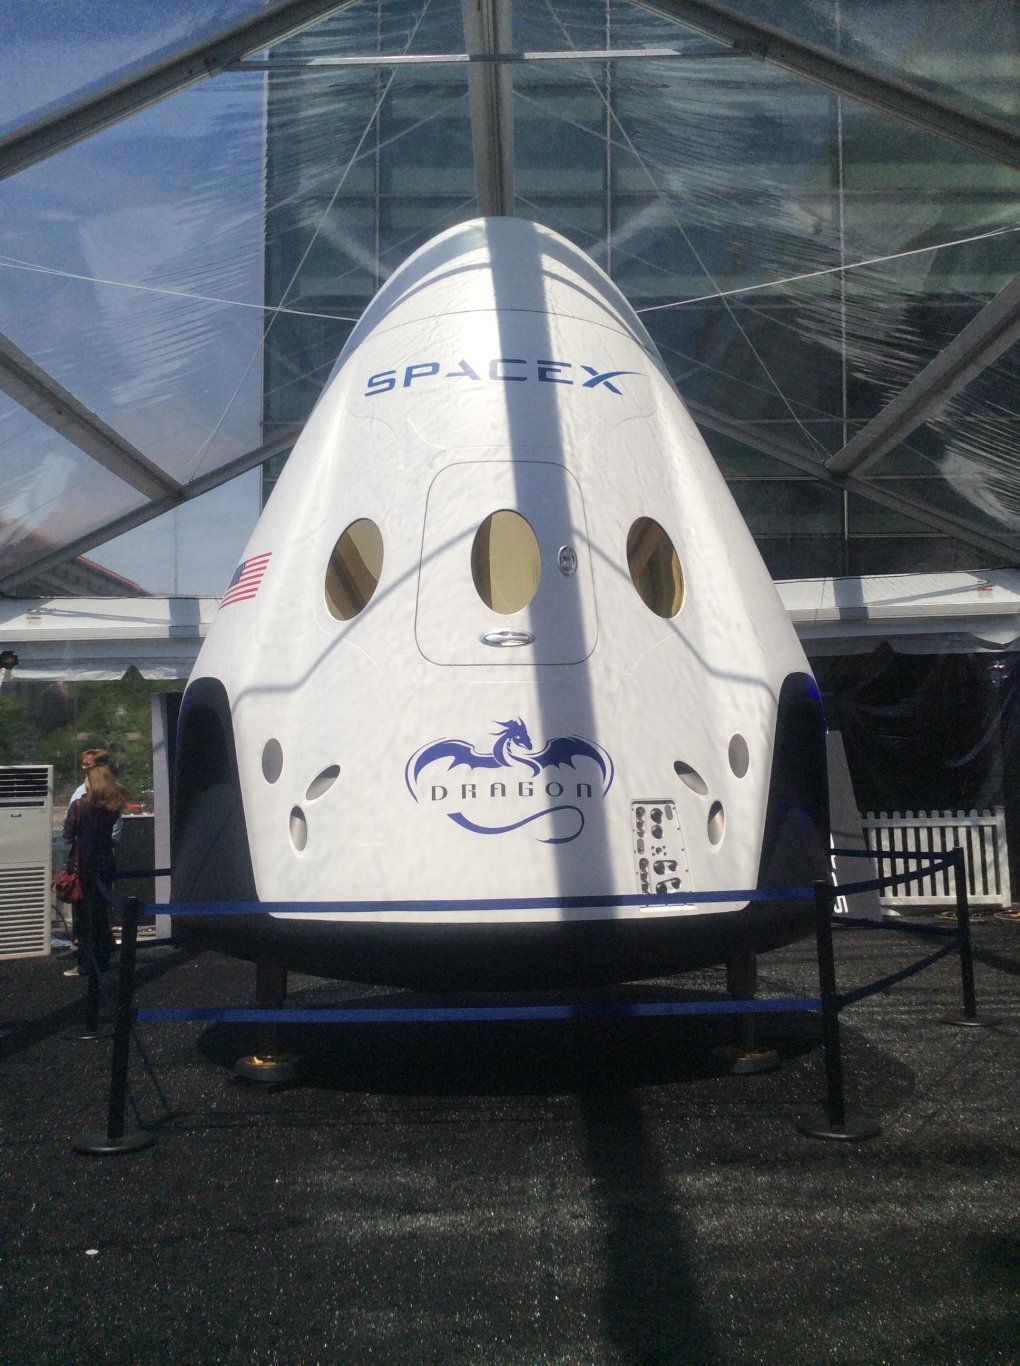 xb9cb5w - spacex's dragon. america's next generation spacecraft.